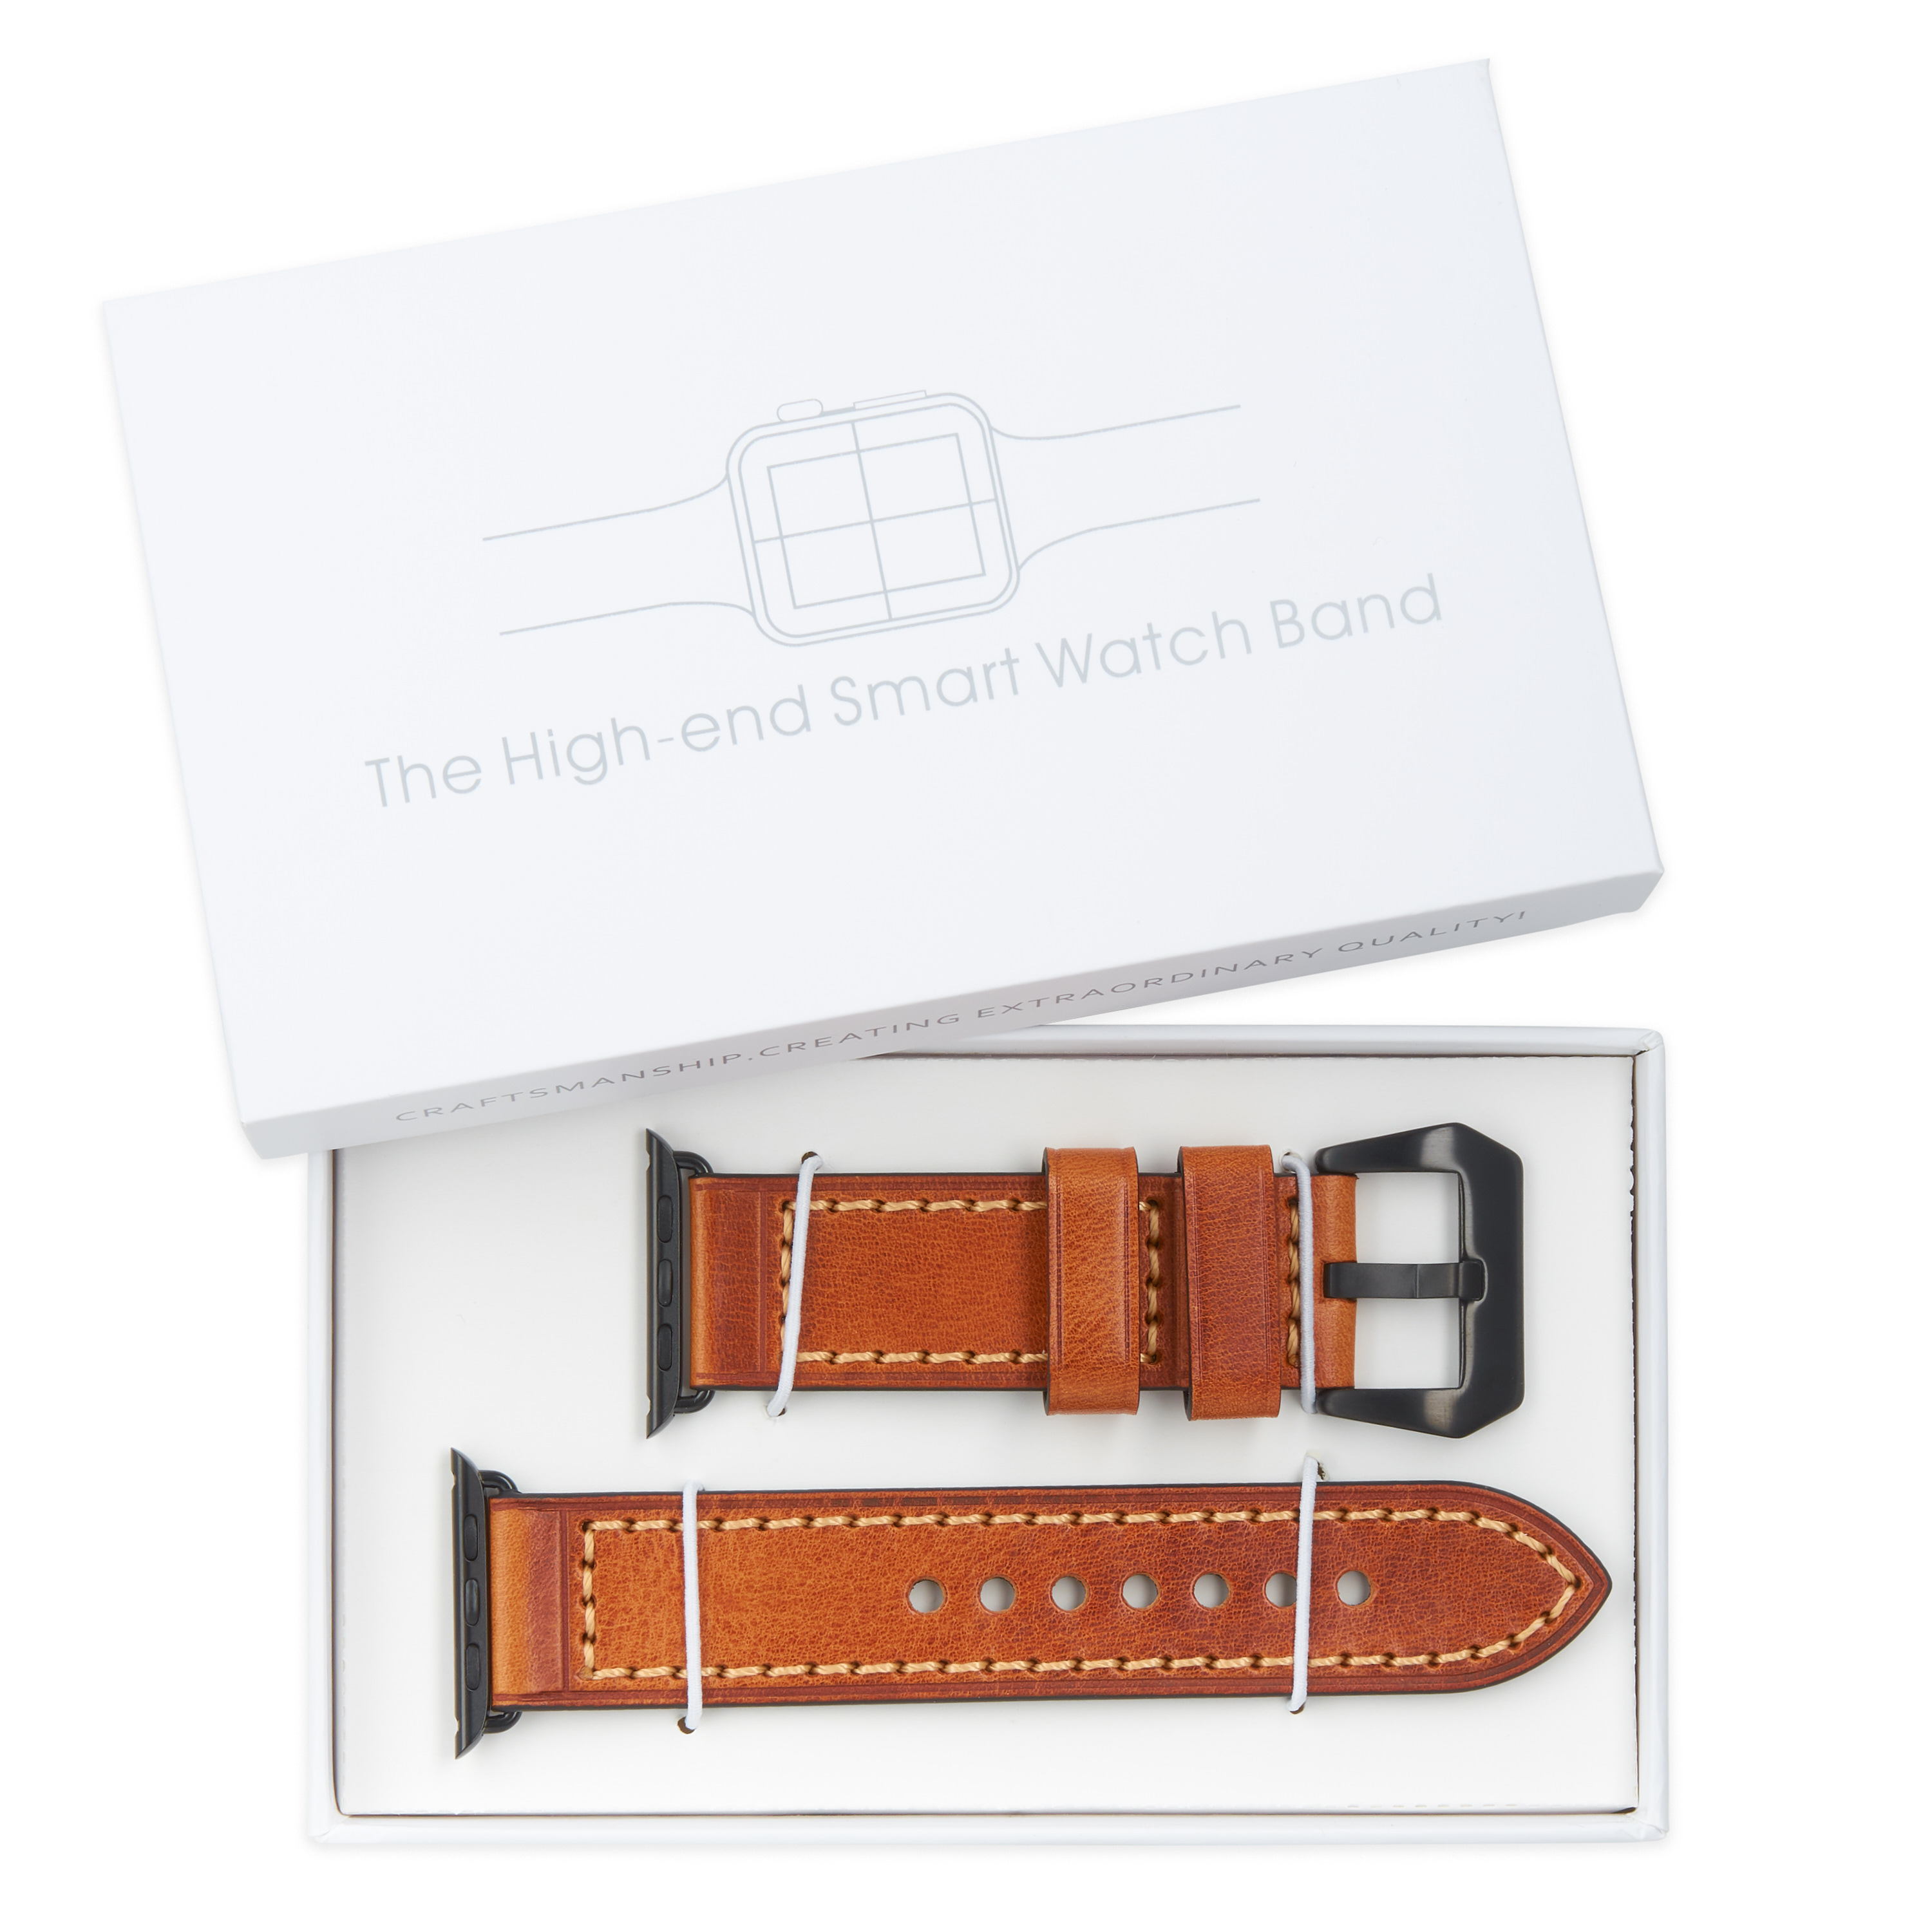 Ian Knaggs Commercial Packshot Photographer - Watch Strap